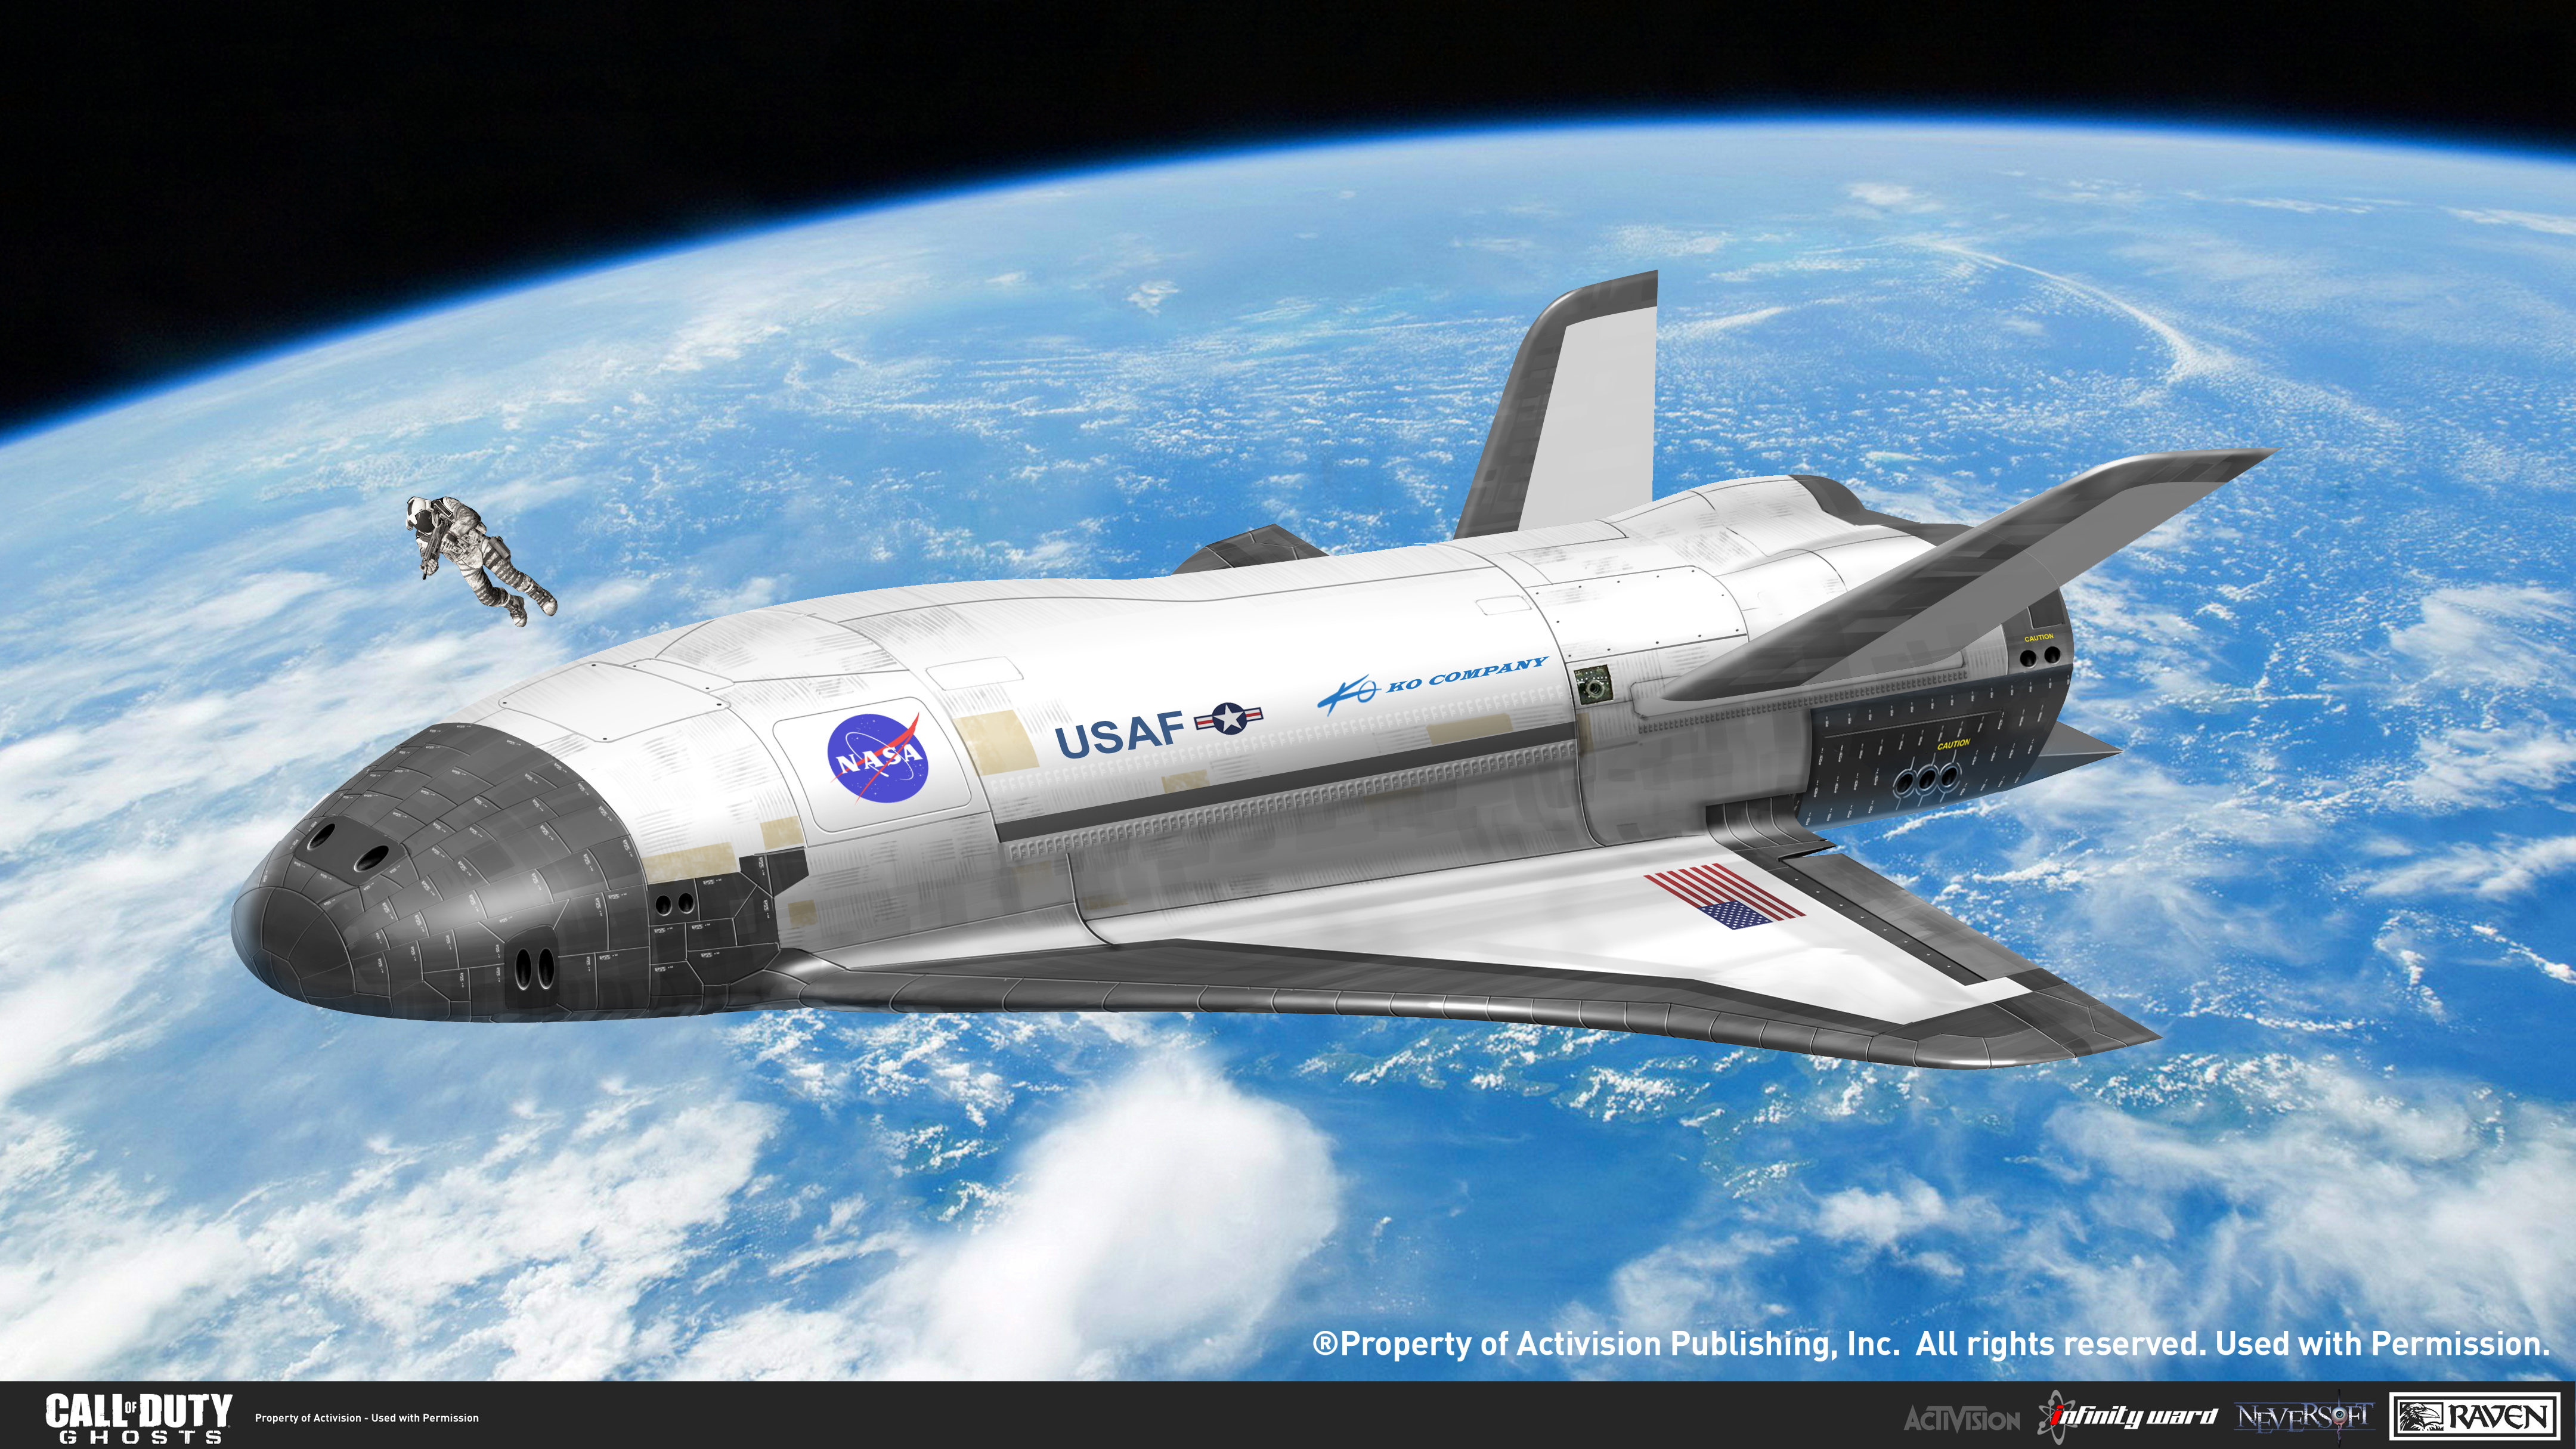 sko_03-25-13_space2_shuttle_02_final_front